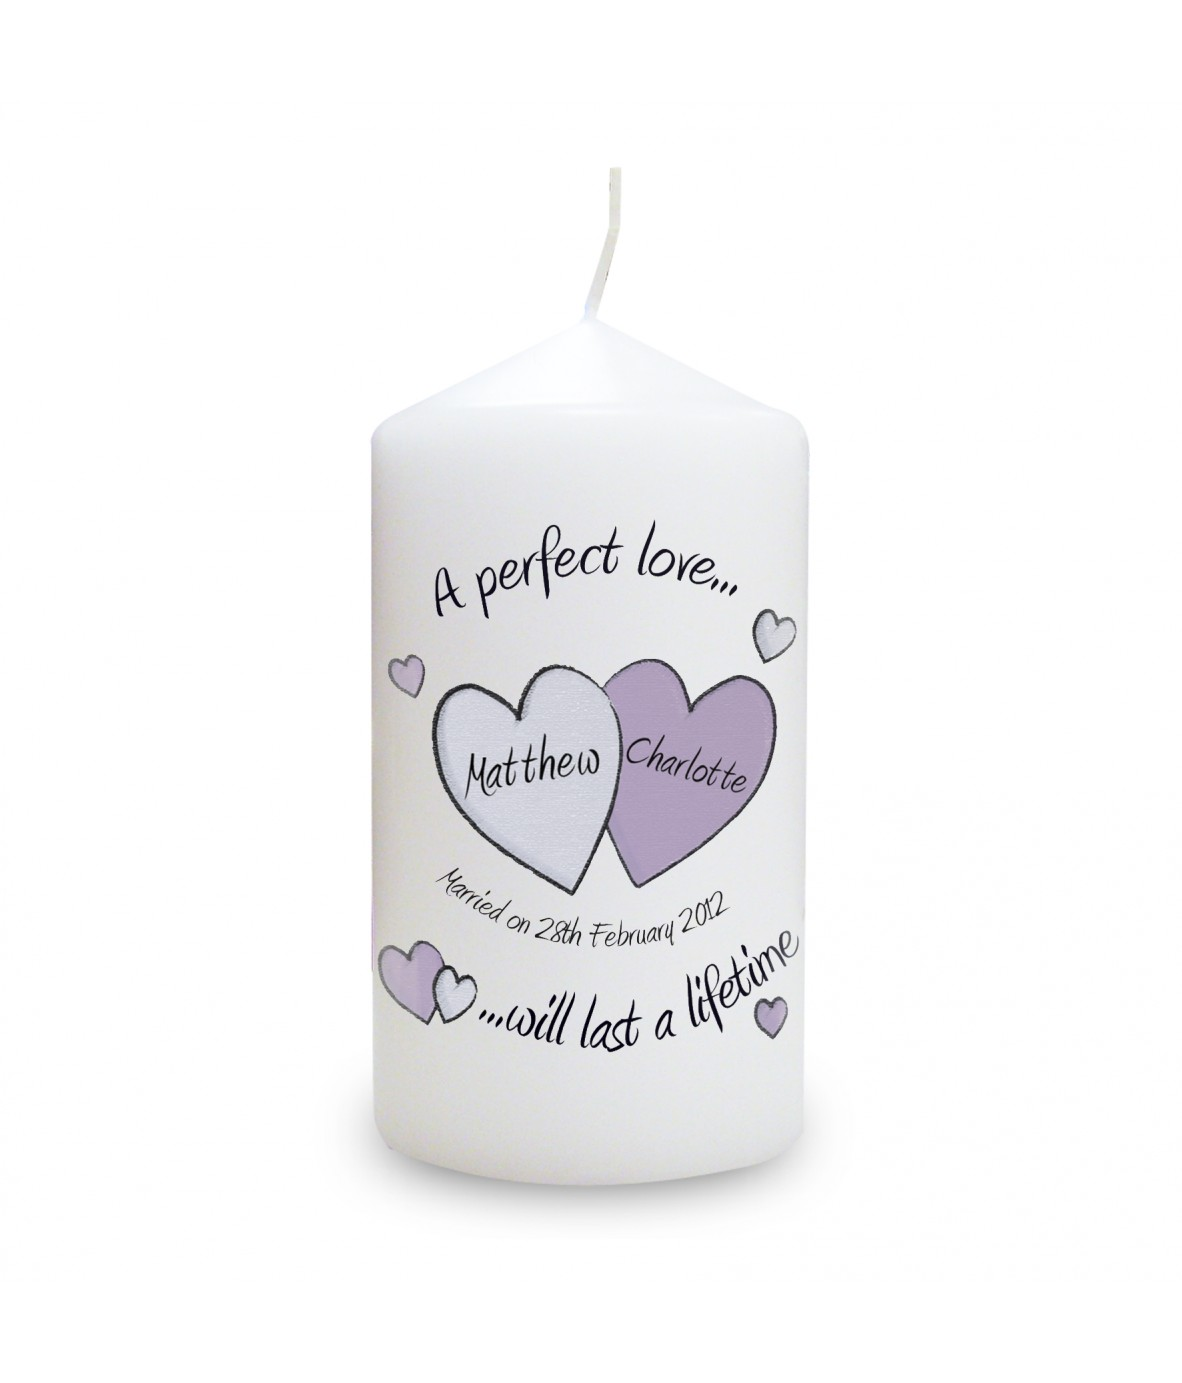 a perfect love wedding personalised candle personalised candles